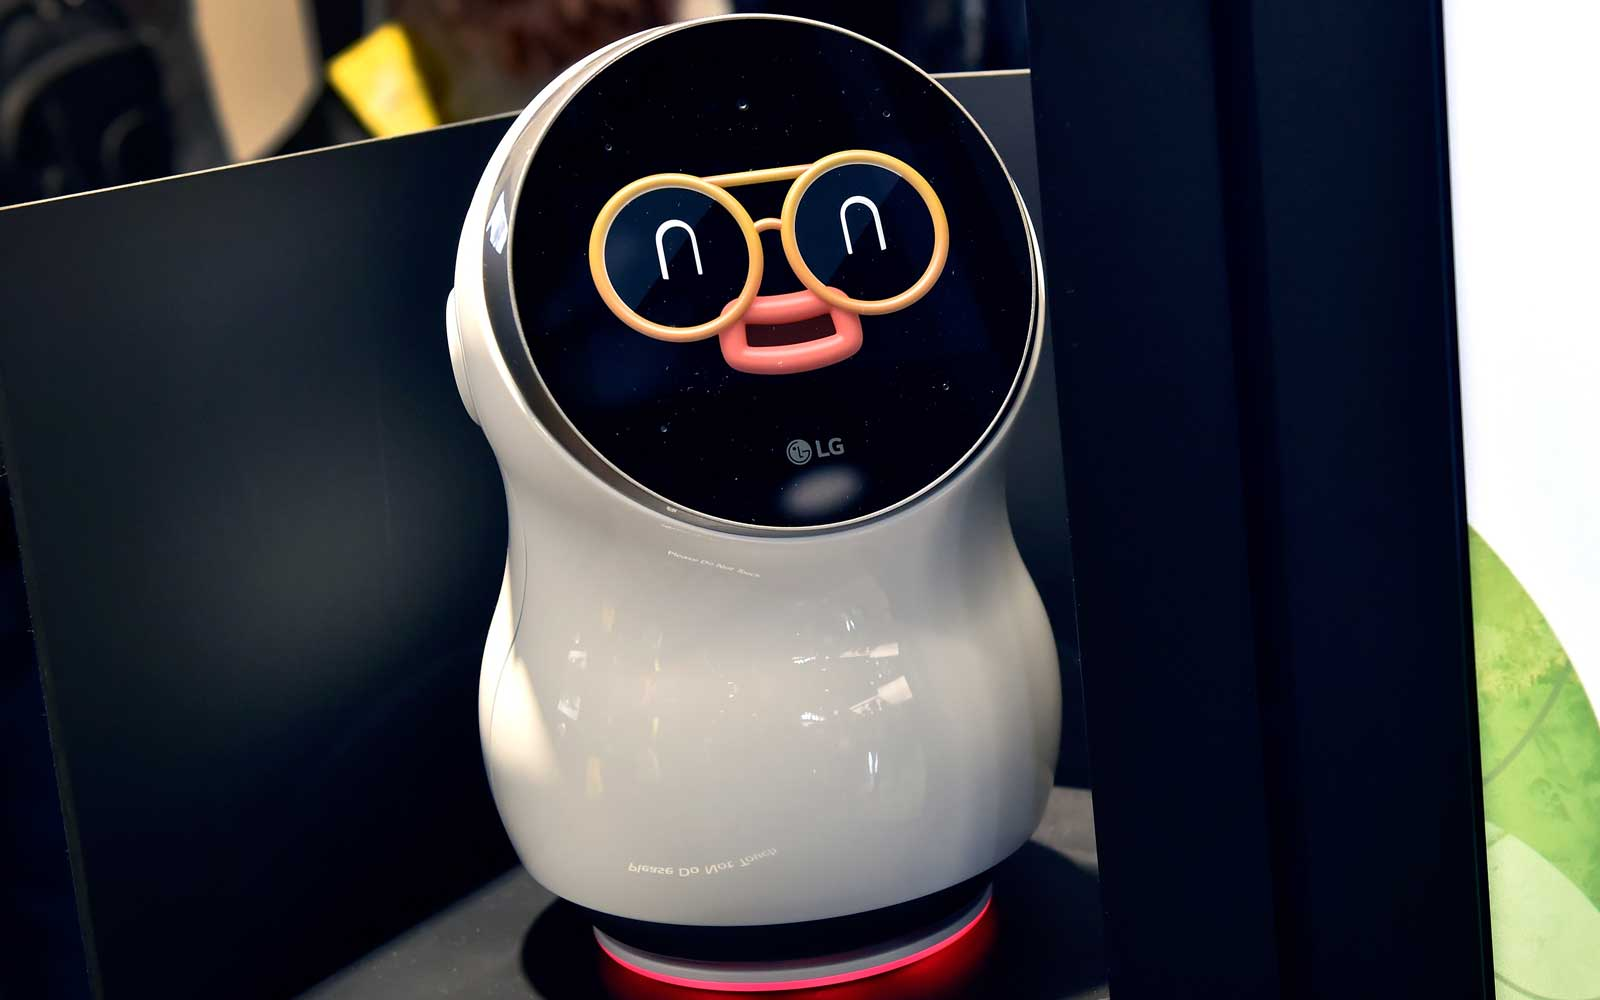 LG's CLOi personal assistant robot is displayed during CES 2018